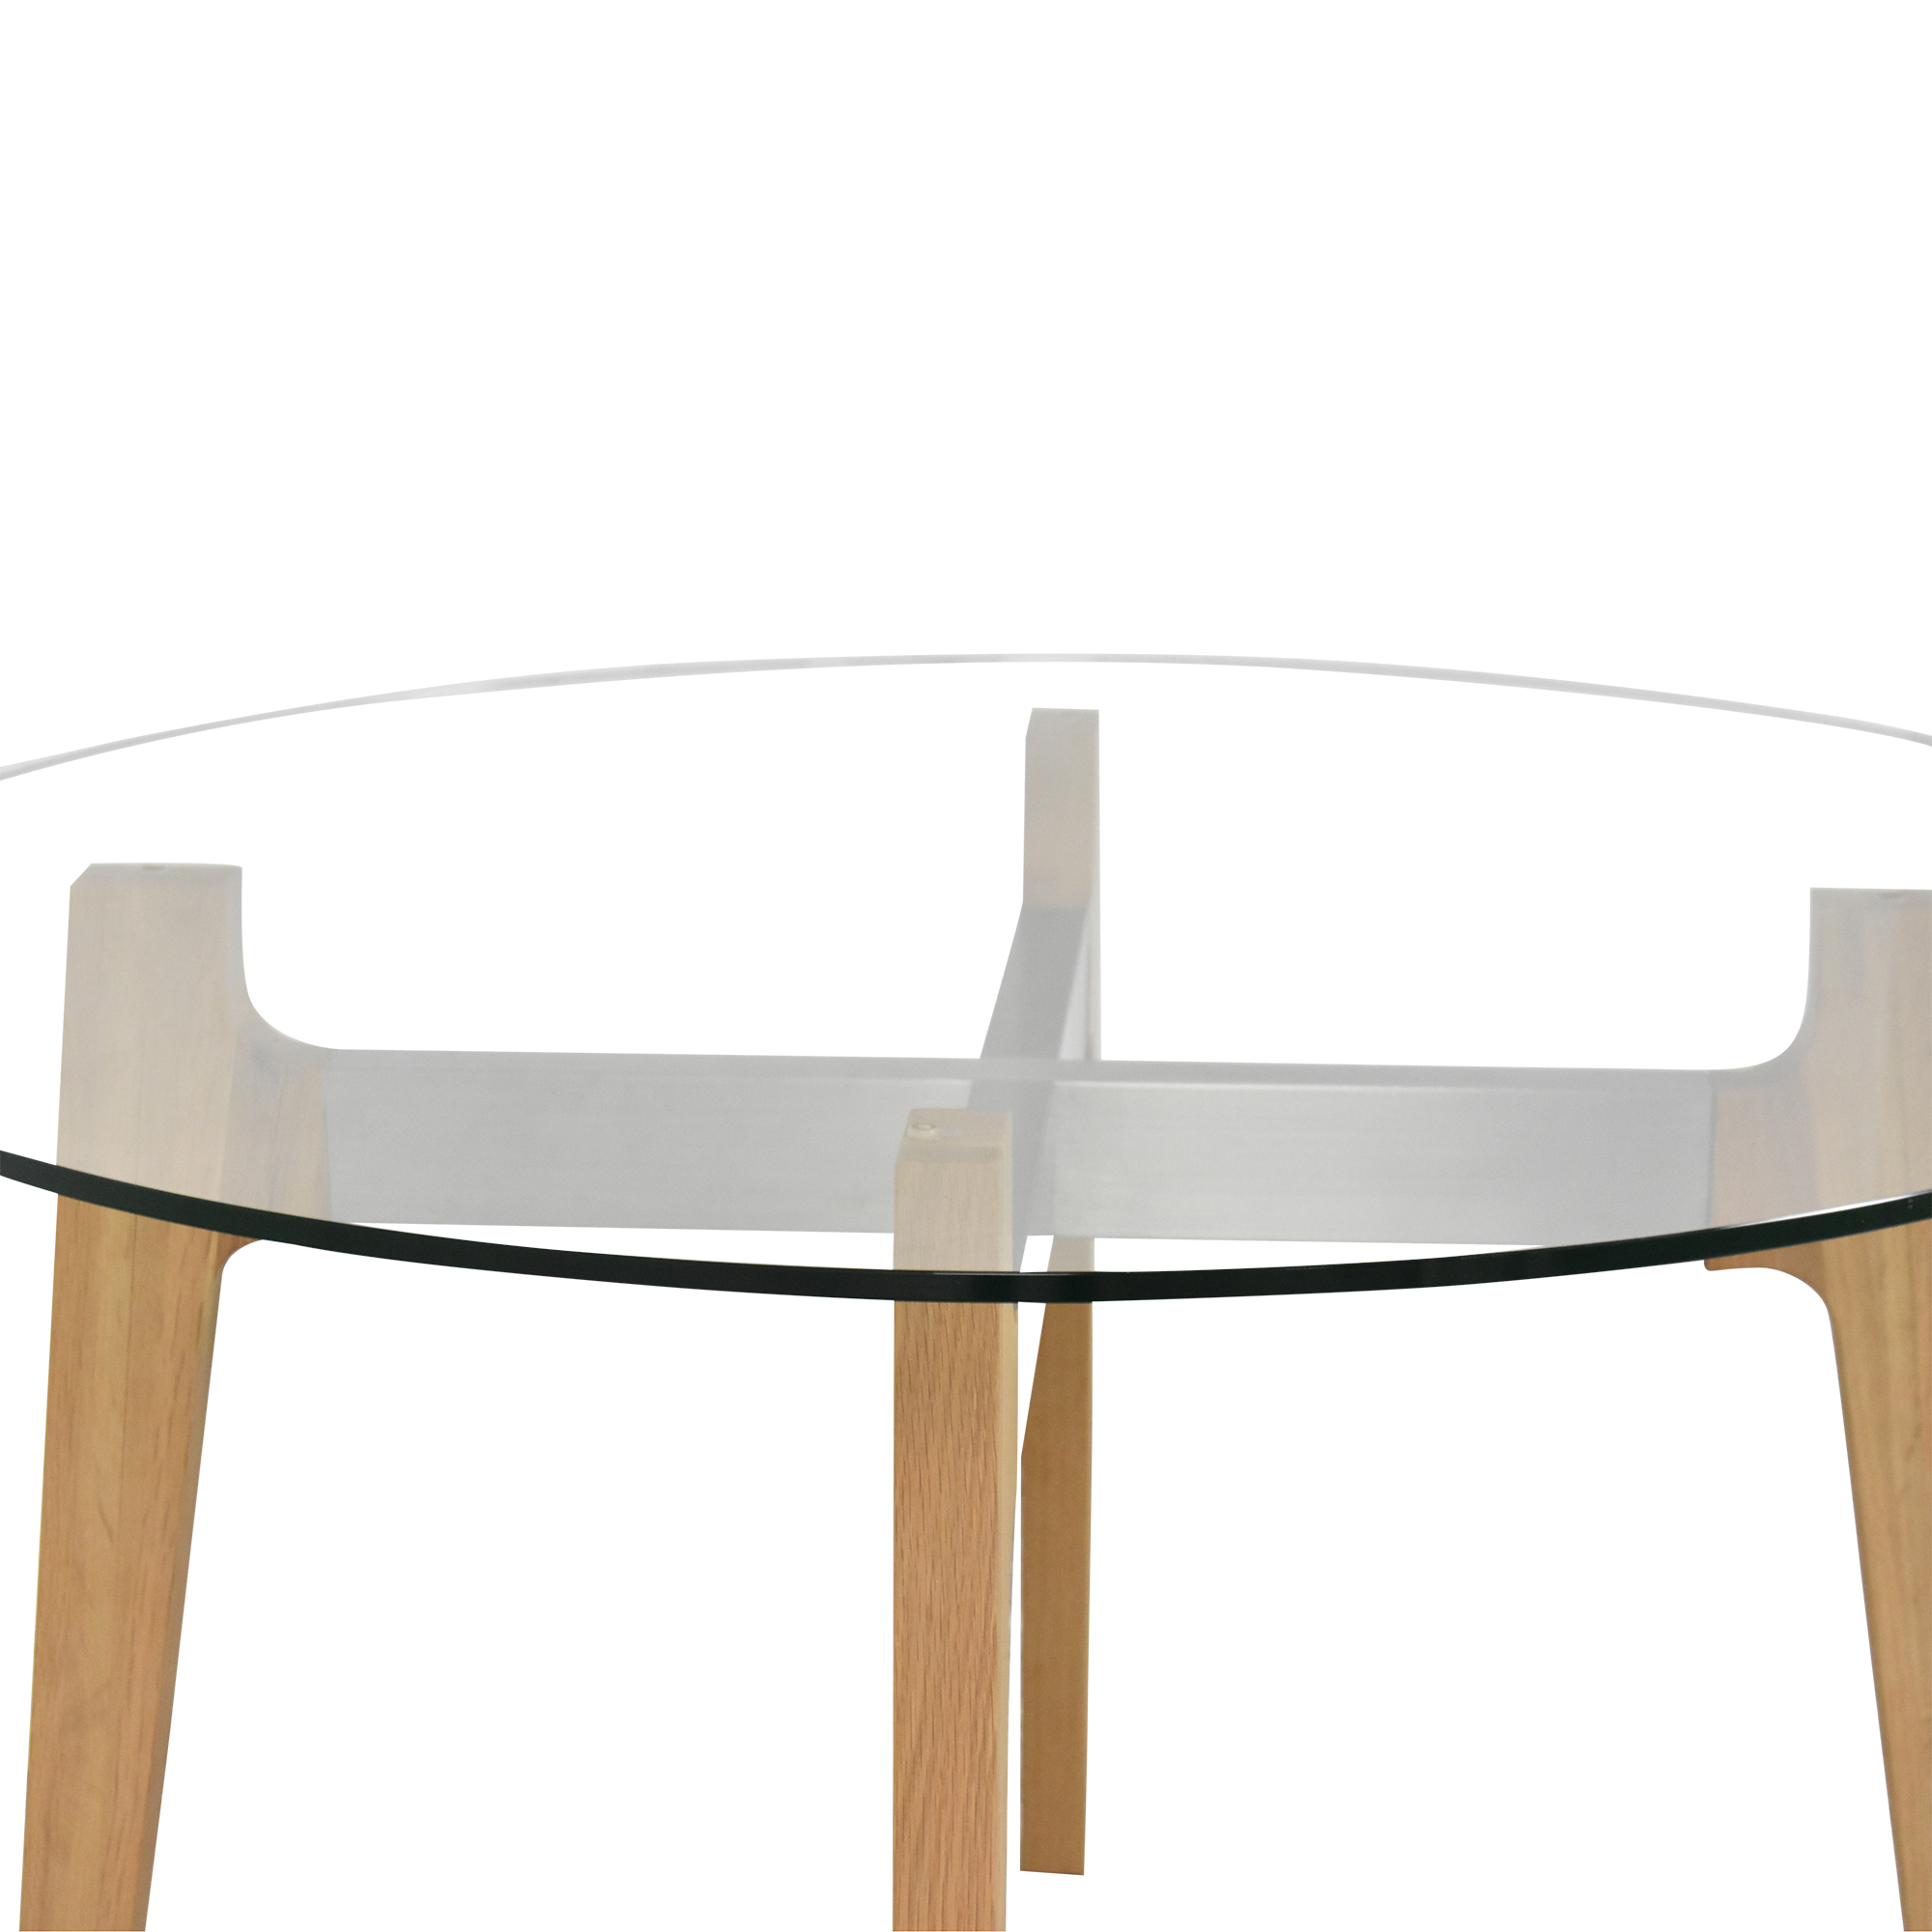 CB2 CB2 Brace Round Dining Table Tables